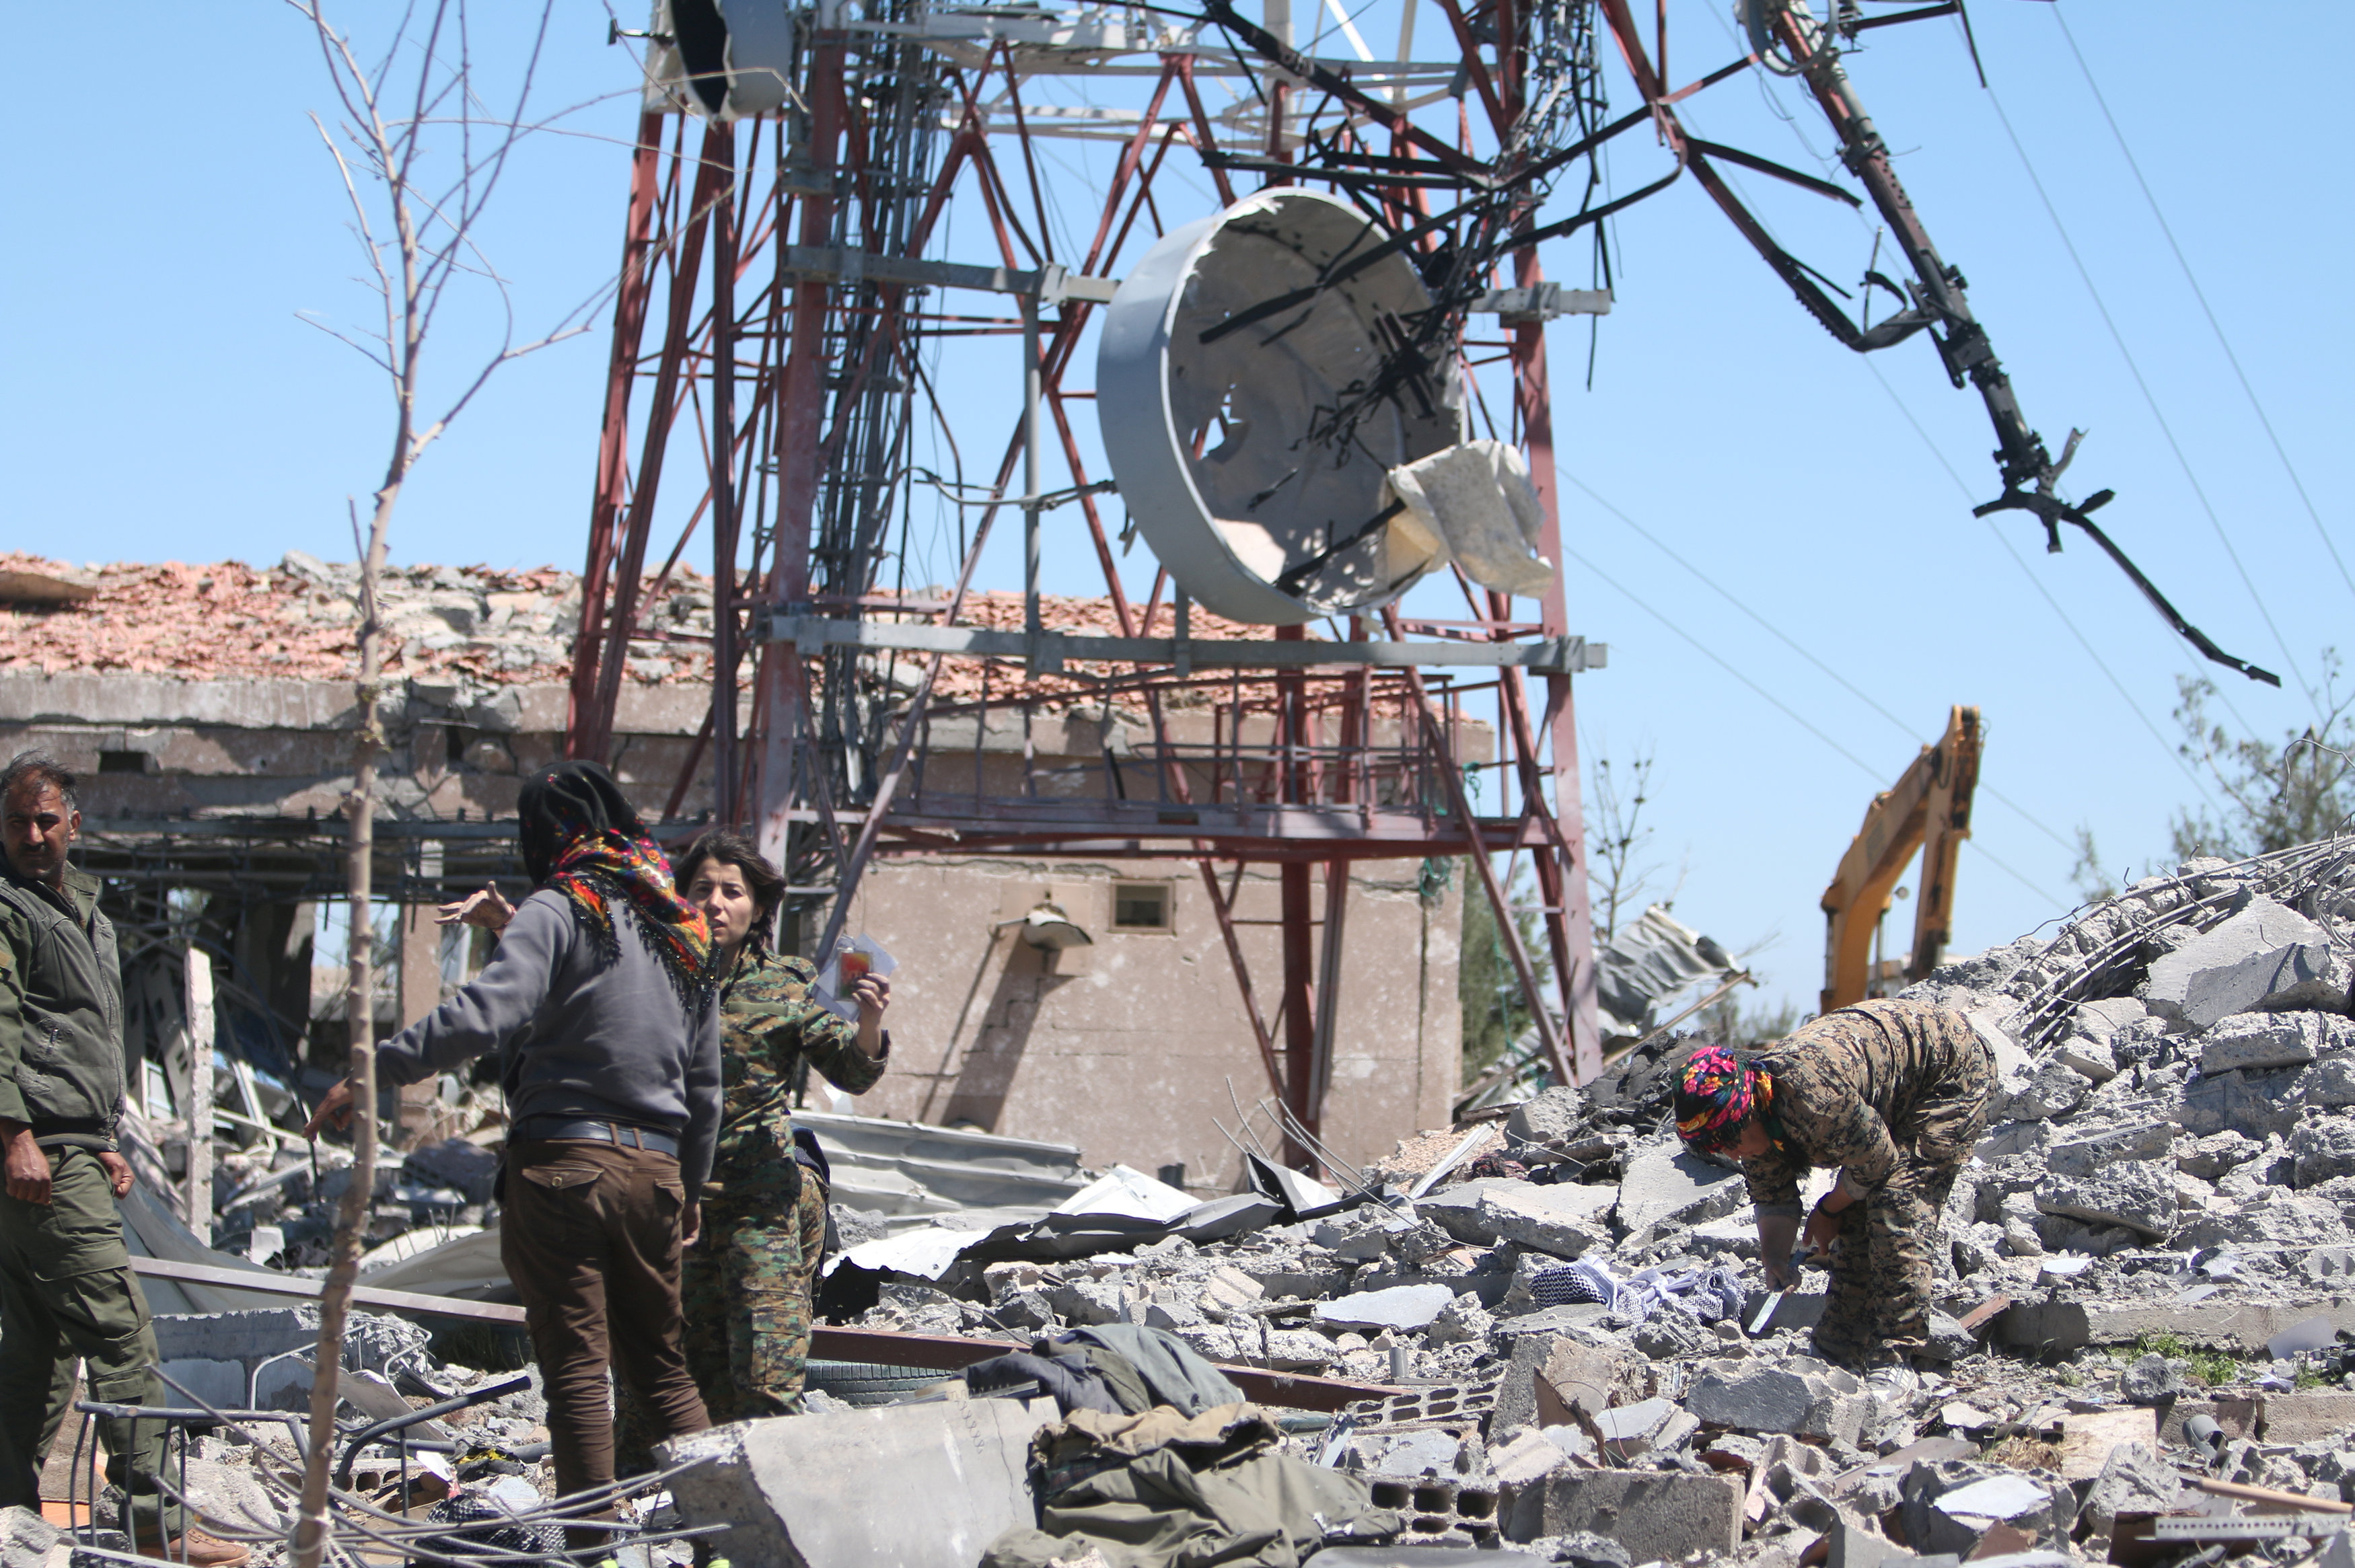 Fighters from the Kurdish People's Protection Units (YPG) inspect the damage at their headquarters after it was hit by Turkish airstrikes in Mount Karachok near Malikiya, Syria April 25, 2017